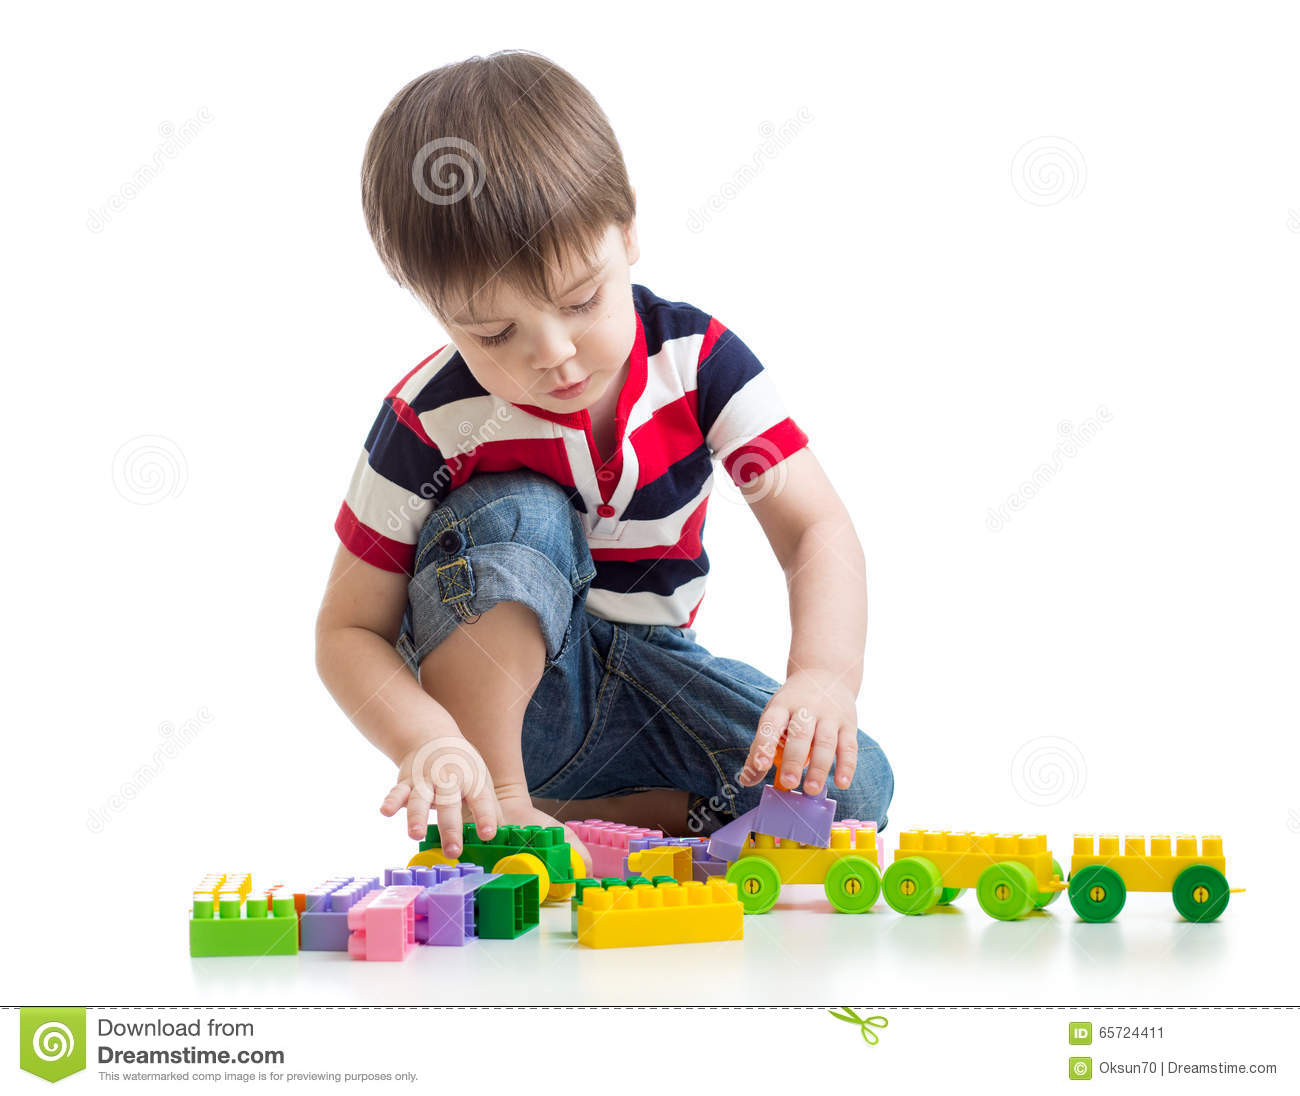 Constructions of childhood